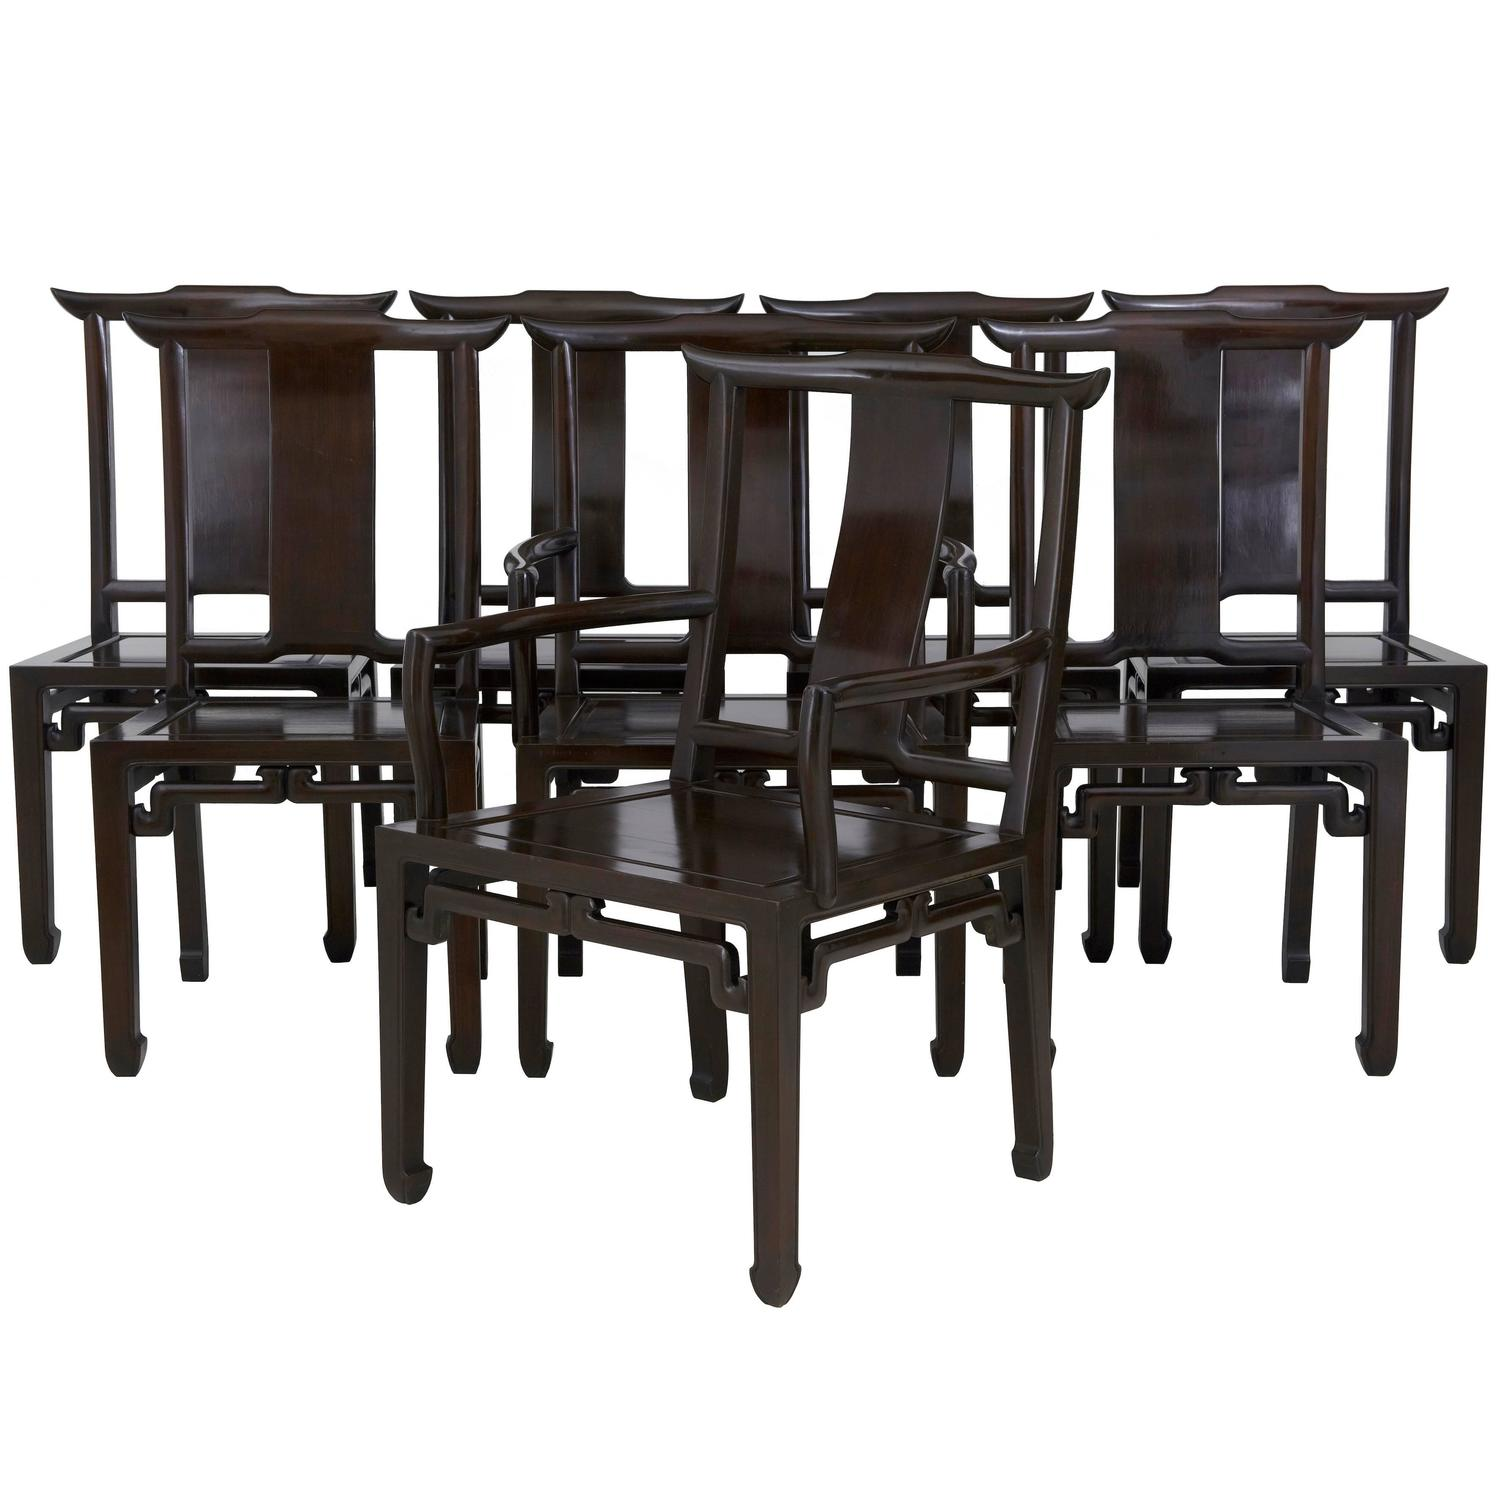 Set of 62 Chinese Hard Wood 1970s Dining Chairs For Sale  : EA863CCHAIRS8264copyorgz from www.1stdibs.com size 1500 x 1500 jpeg 118kB